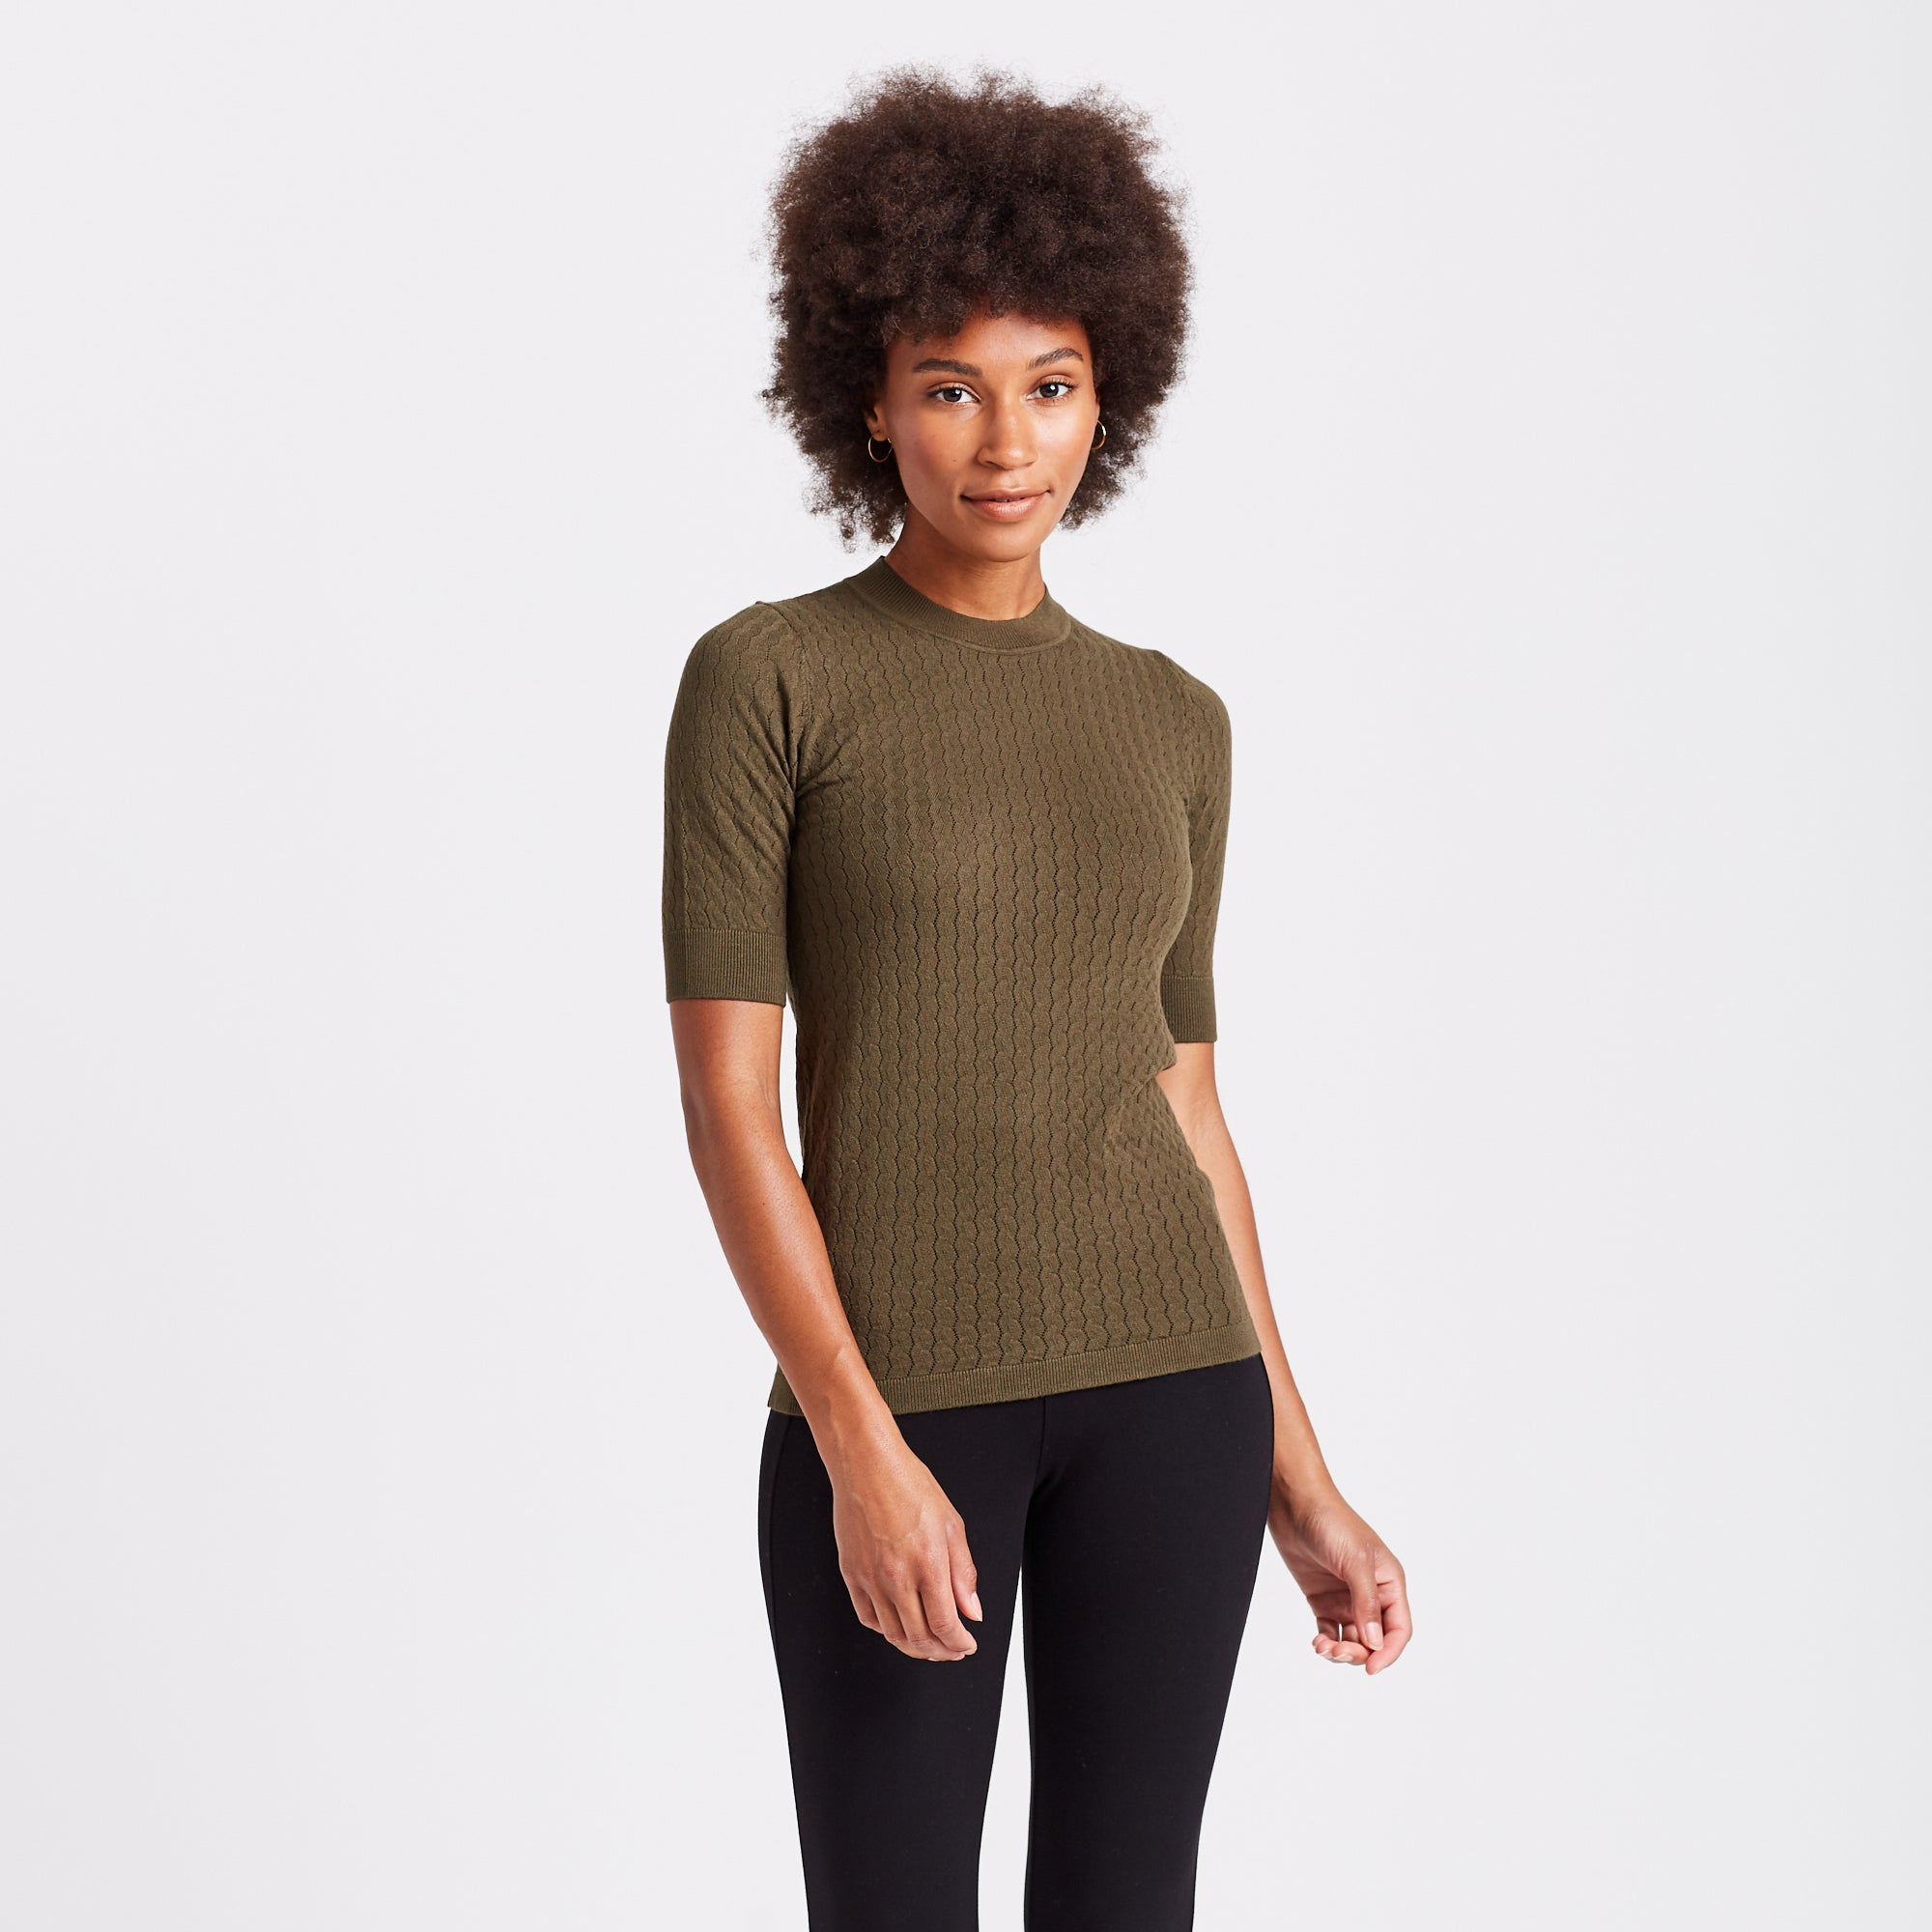 THE ZIG ZAG KNIT - SALE